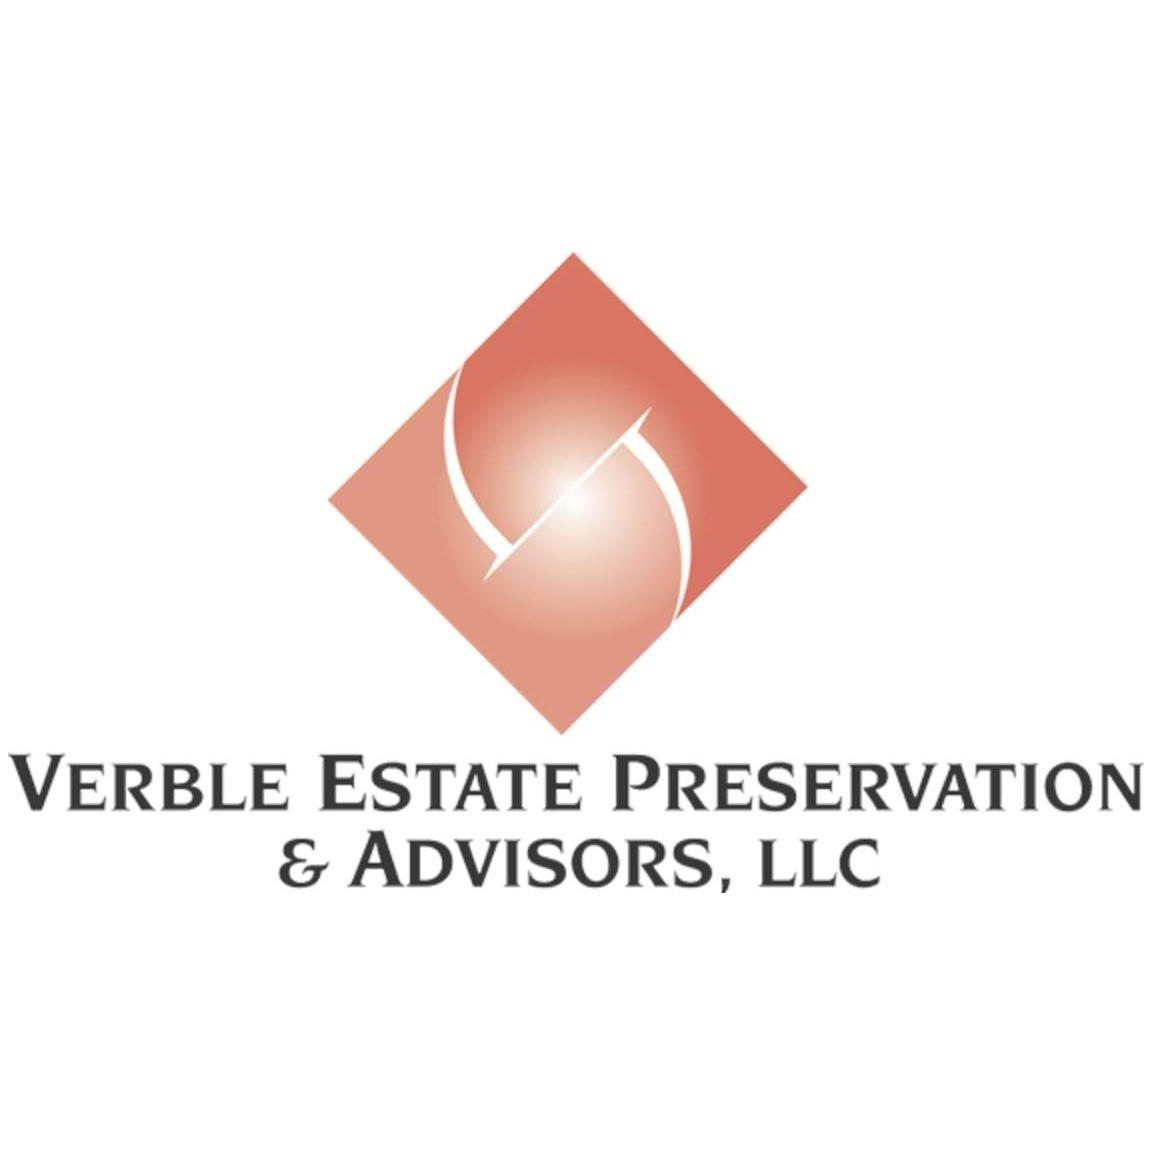 Verble Estate Preservation & Advisors, LLC